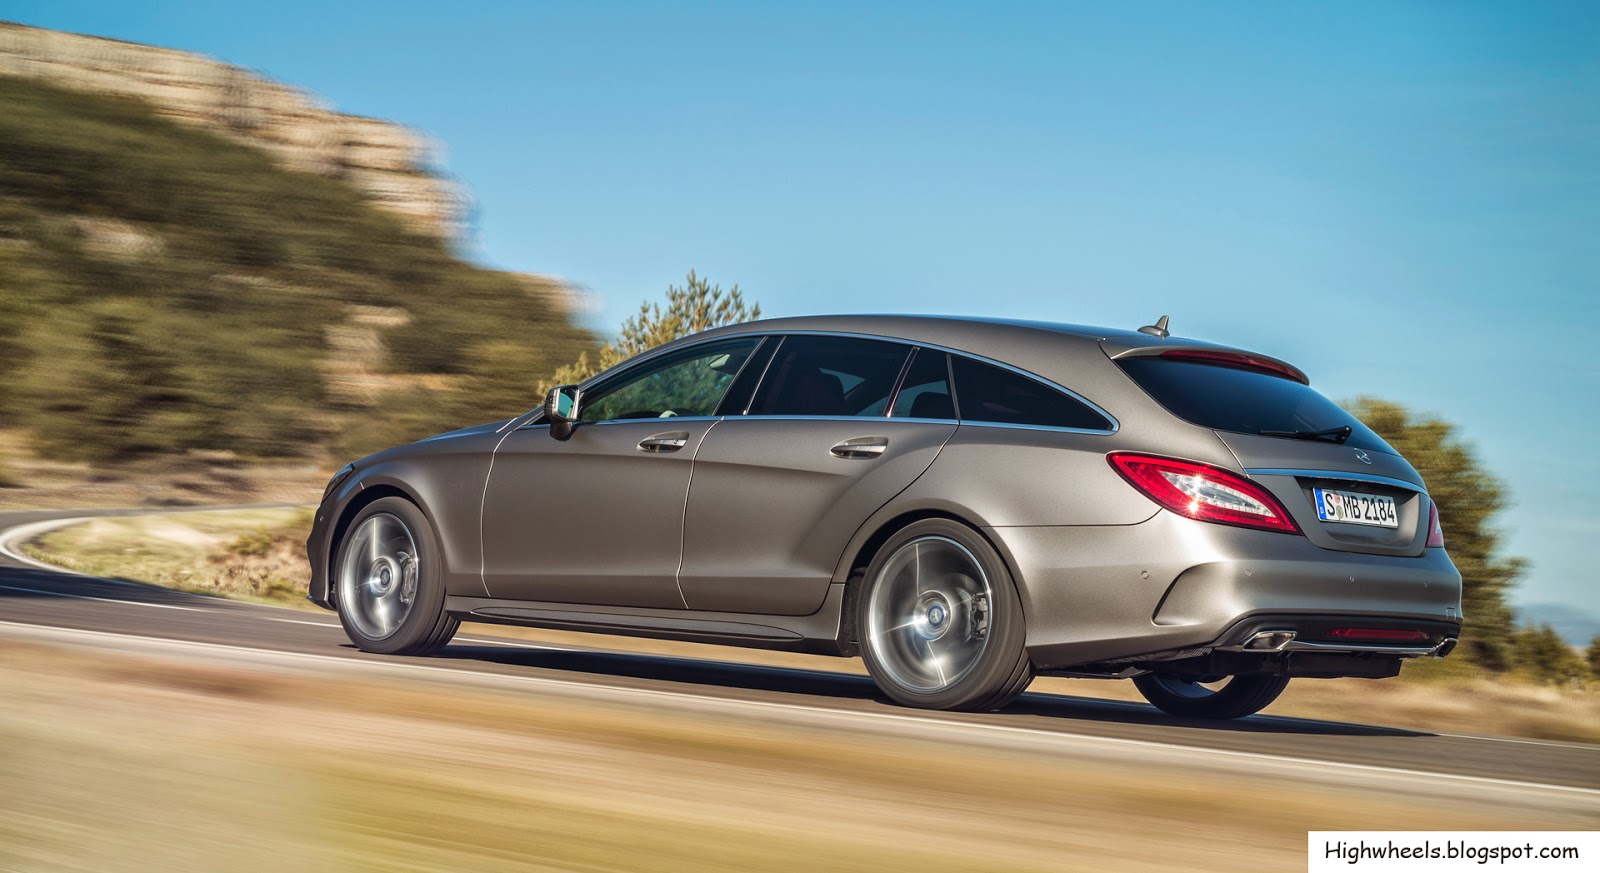 2015 mercedes benz cls class shooting brake high wheels. Black Bedroom Furniture Sets. Home Design Ideas